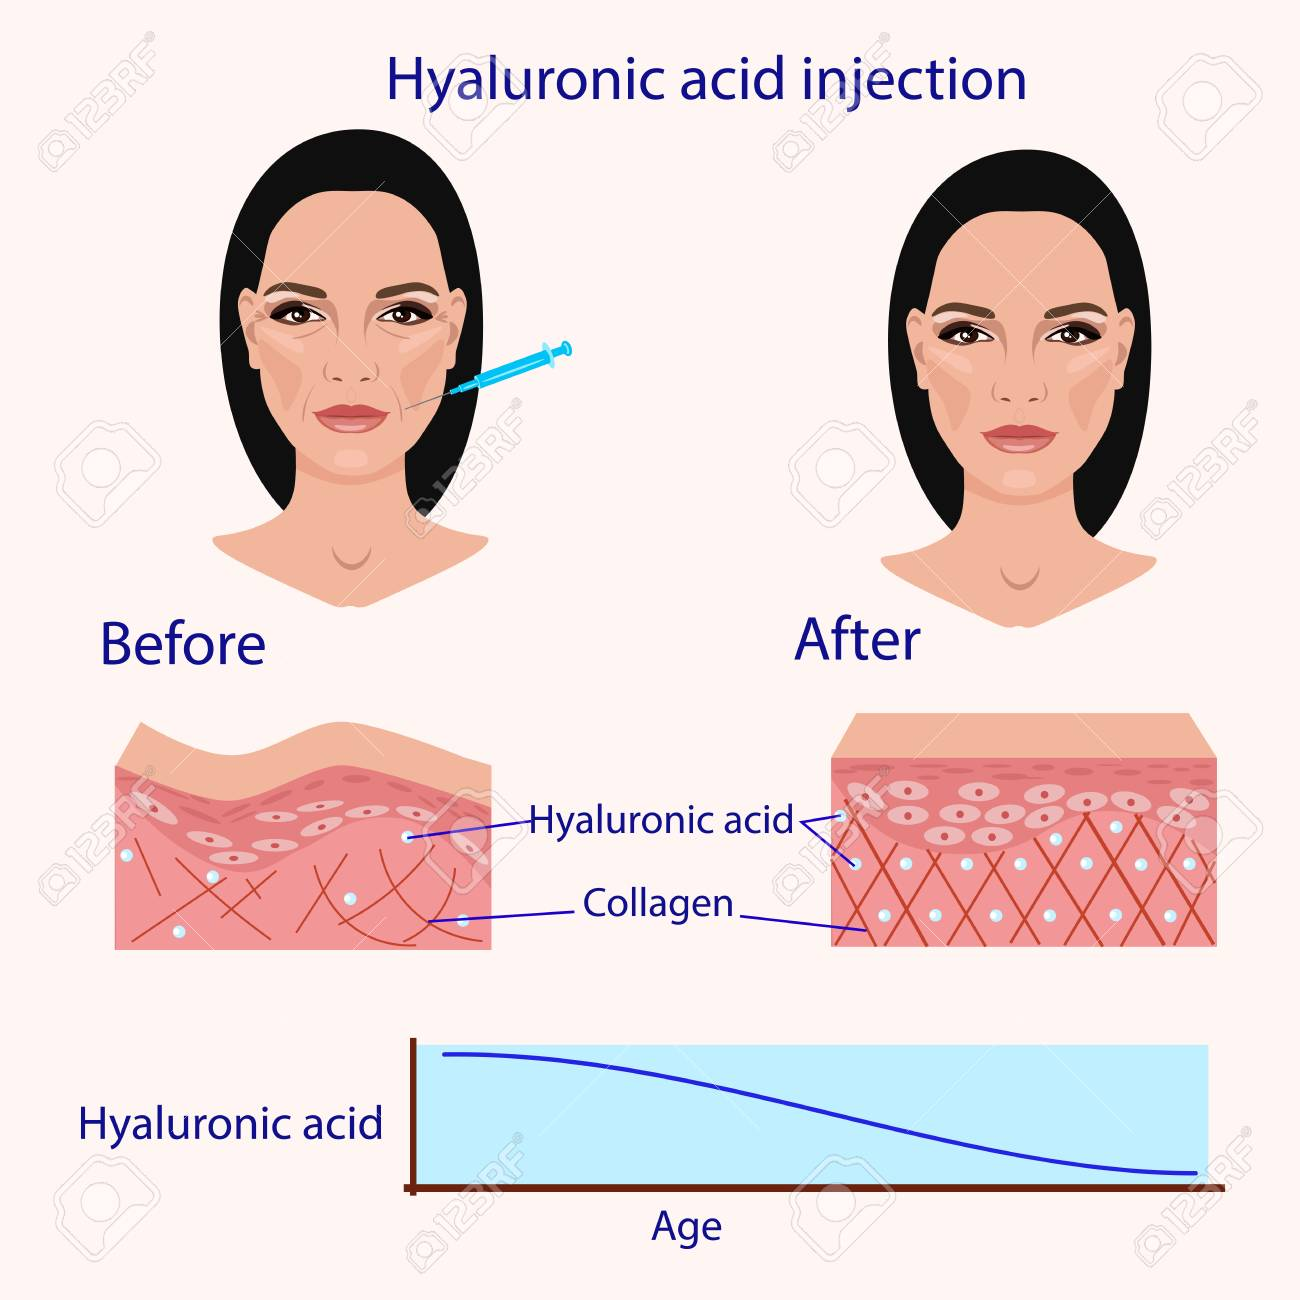 hight resolution of hyaluronic acid injection before and affect vector illustration diagram stock vector 87570993